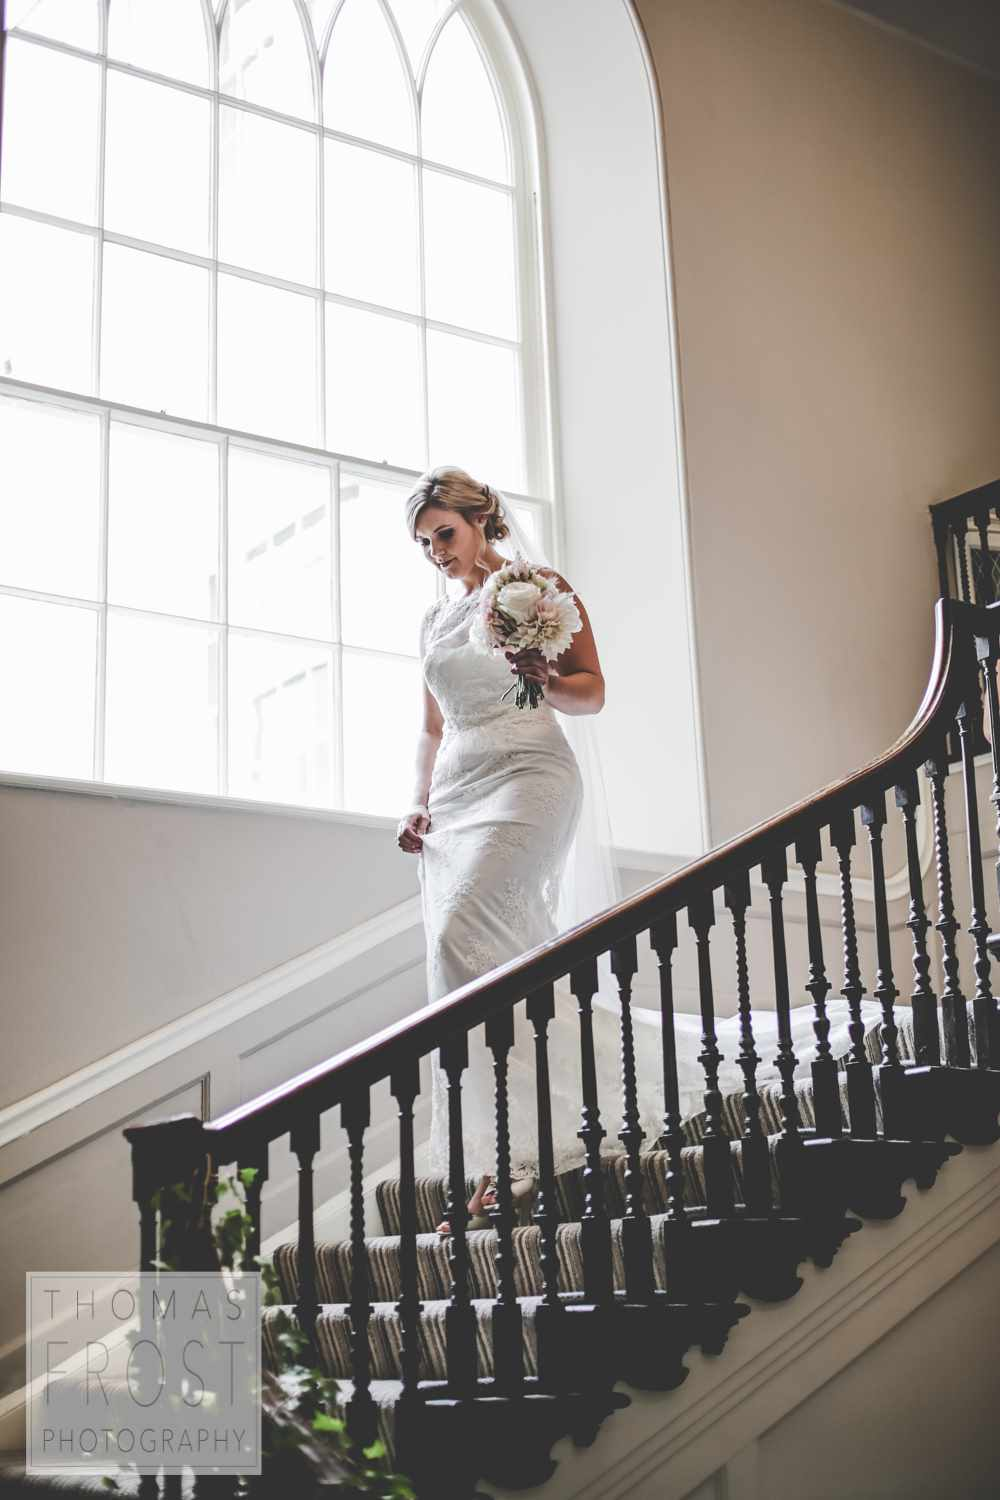 rockbeare-manor-wedding-photography-thomas-frost-devon-wedding-photographer-77